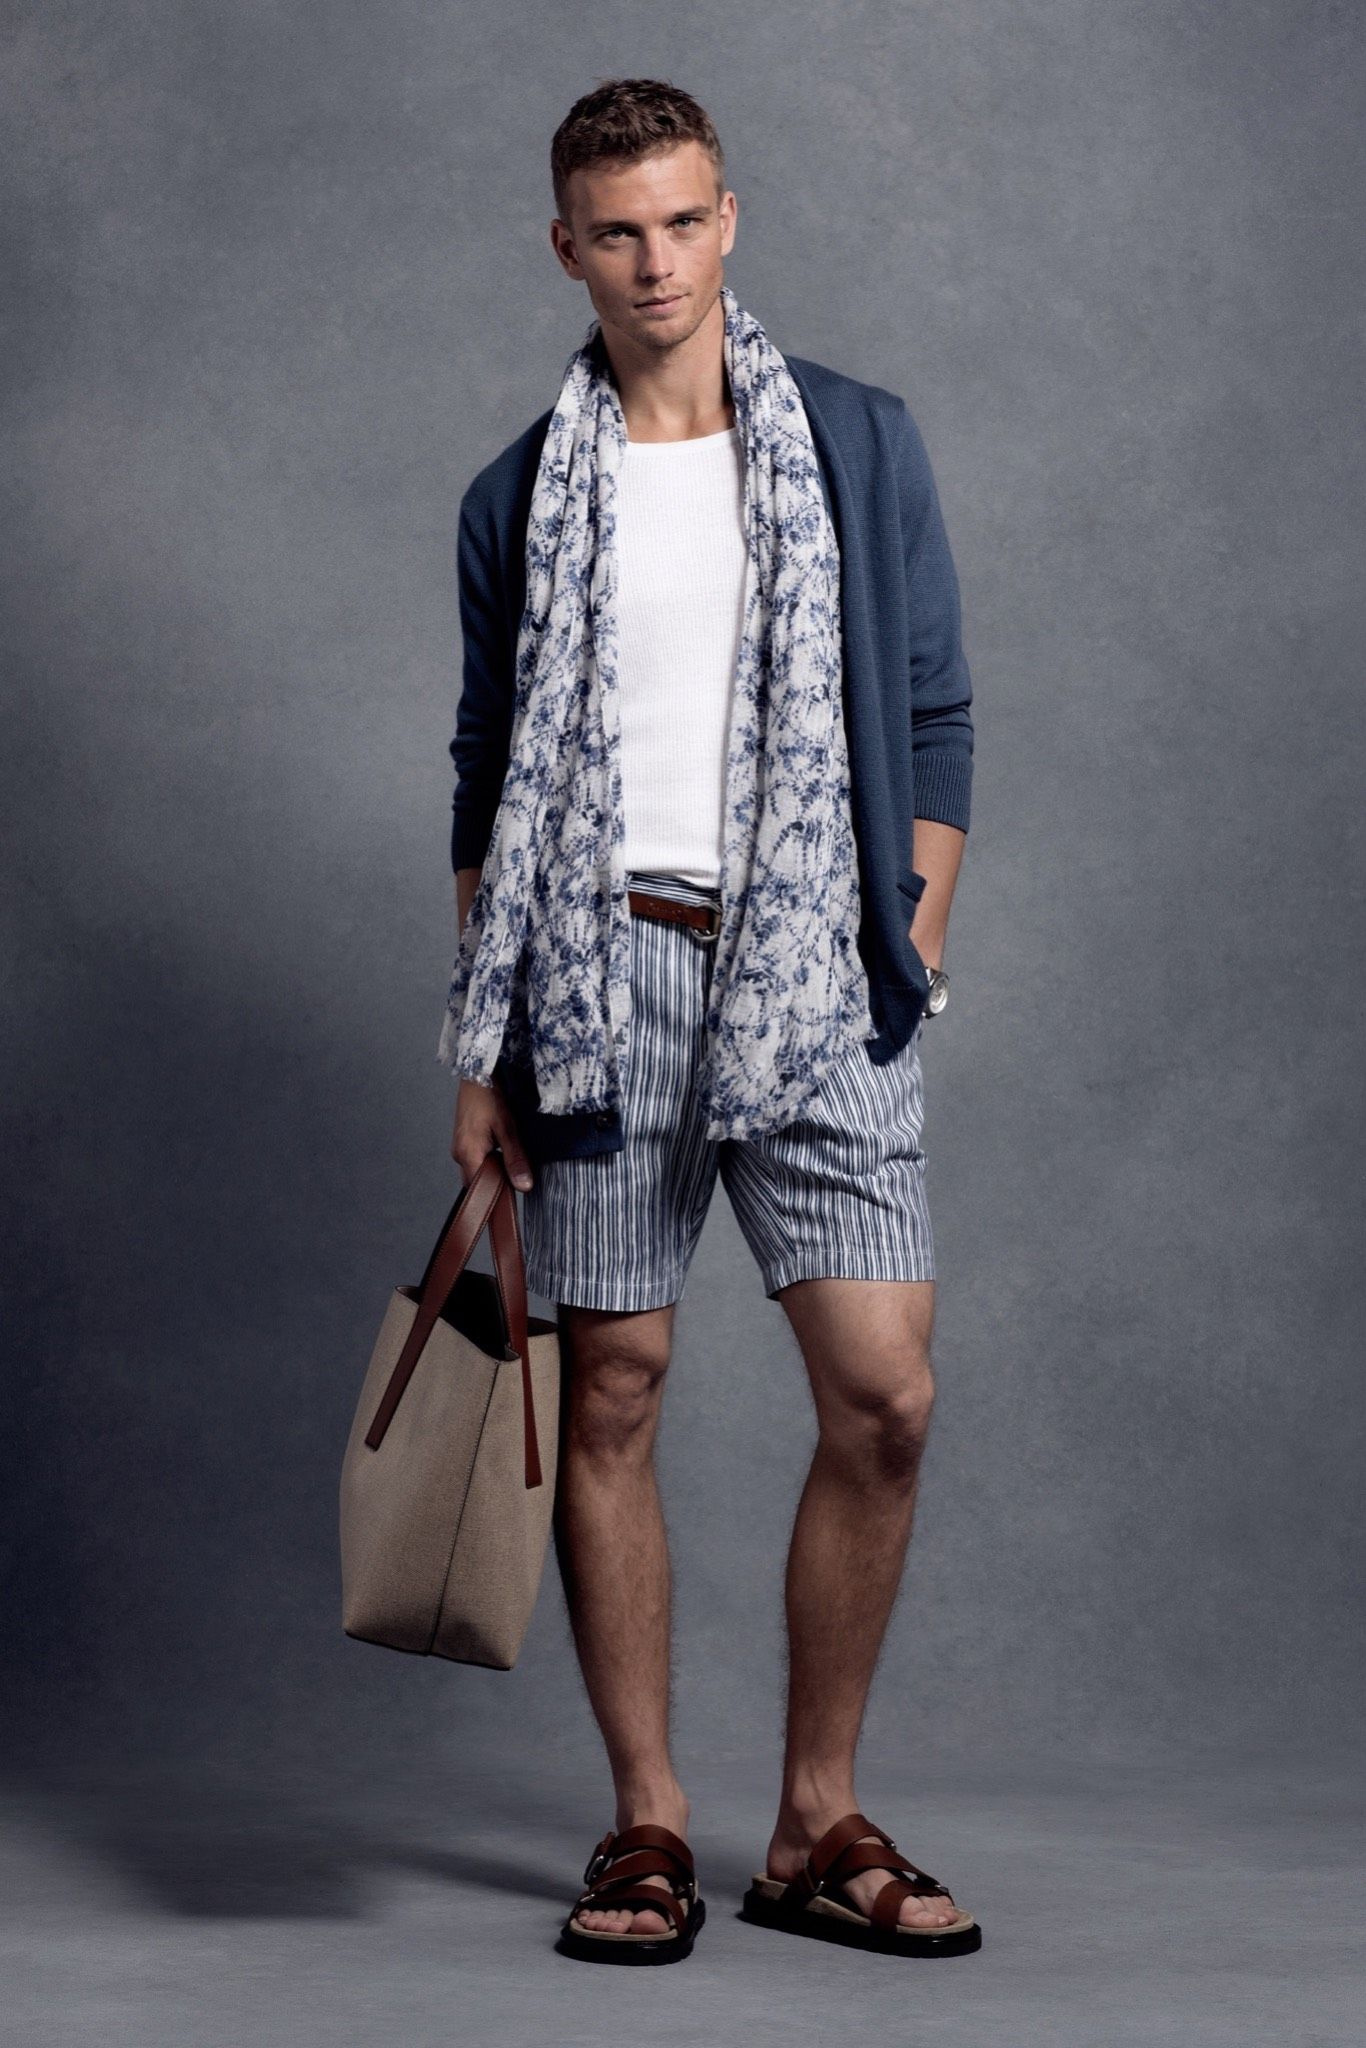 050d4ba43b3c9 Michael Kors Collection Spring 2016 Menswear - Collection - Gallery ...